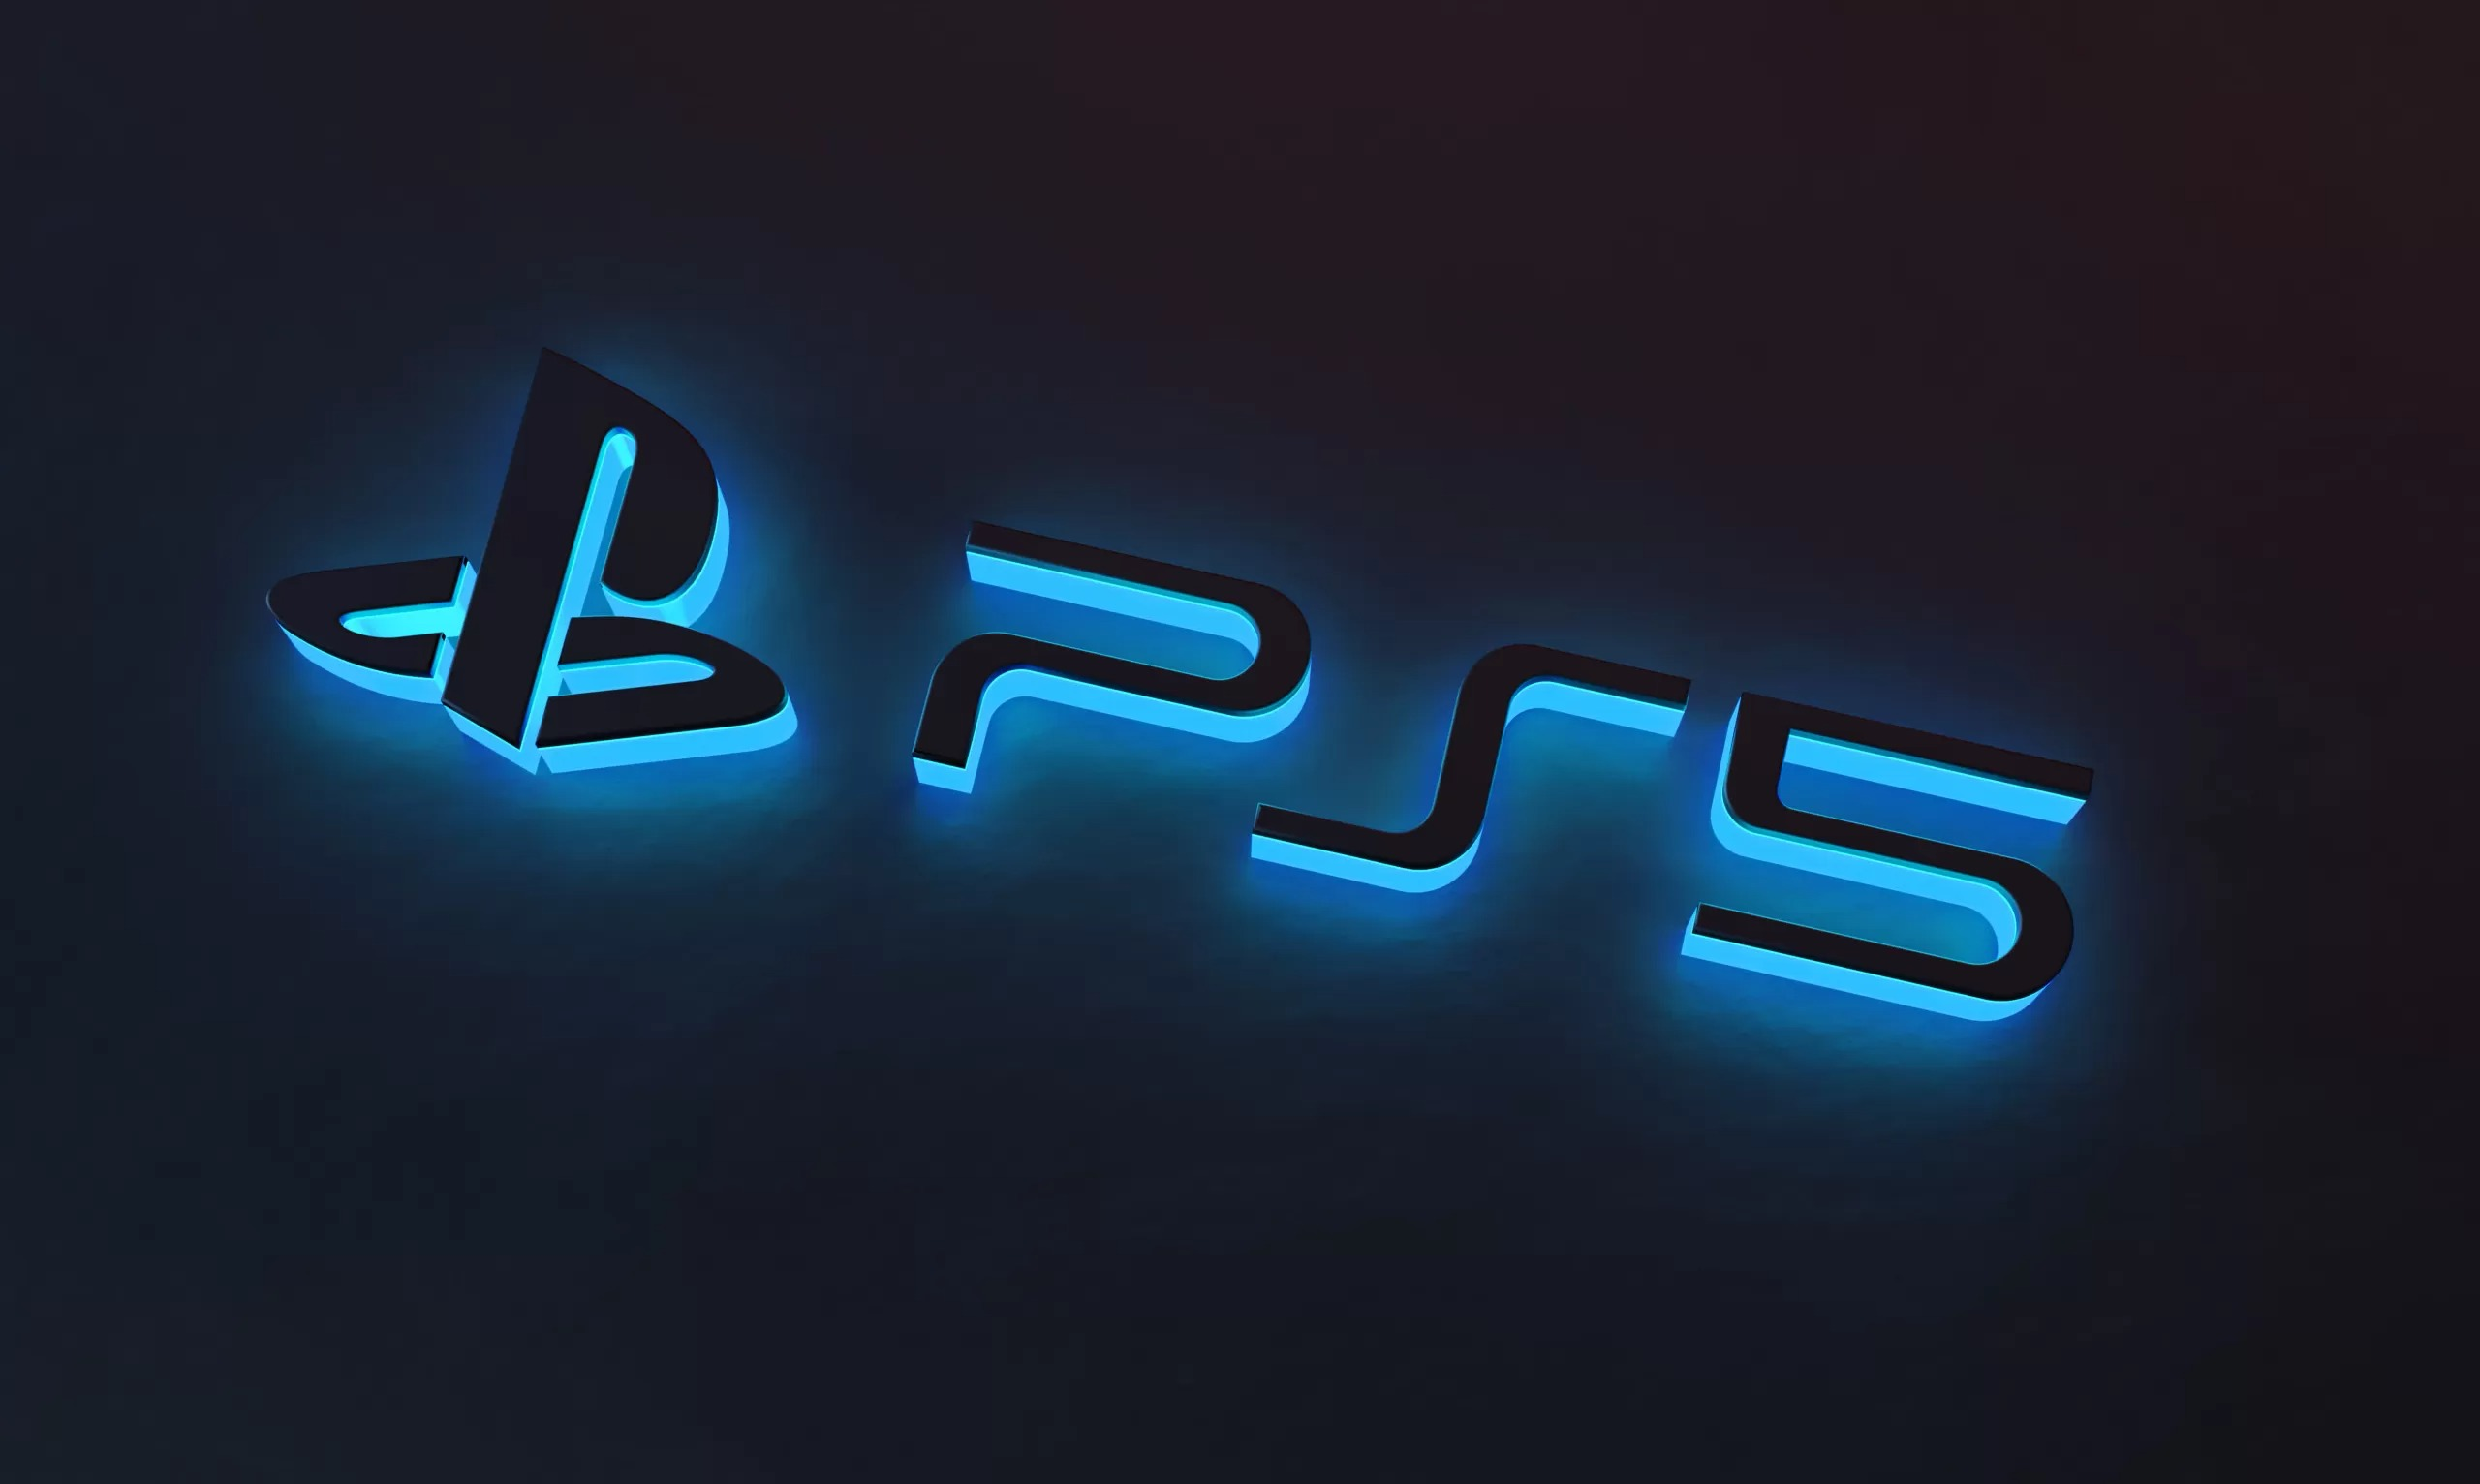 PlayStation 5 Digital Edition consoles reportedly in short supply